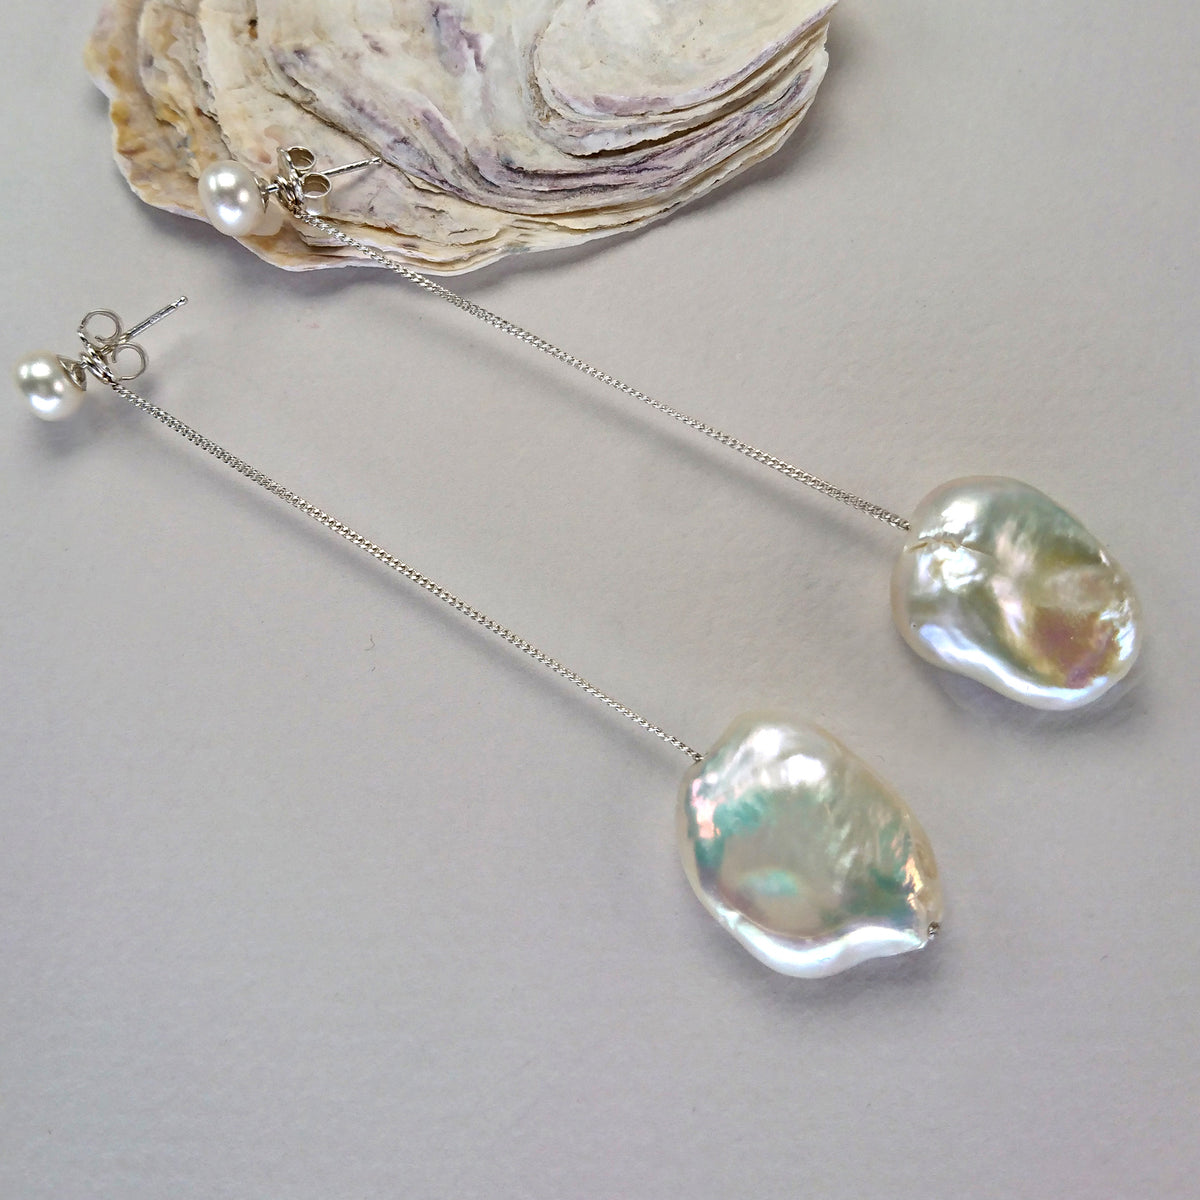 Flat Baroque Freshwater Pearl Optional Drops on Silver Chain with pearl stud